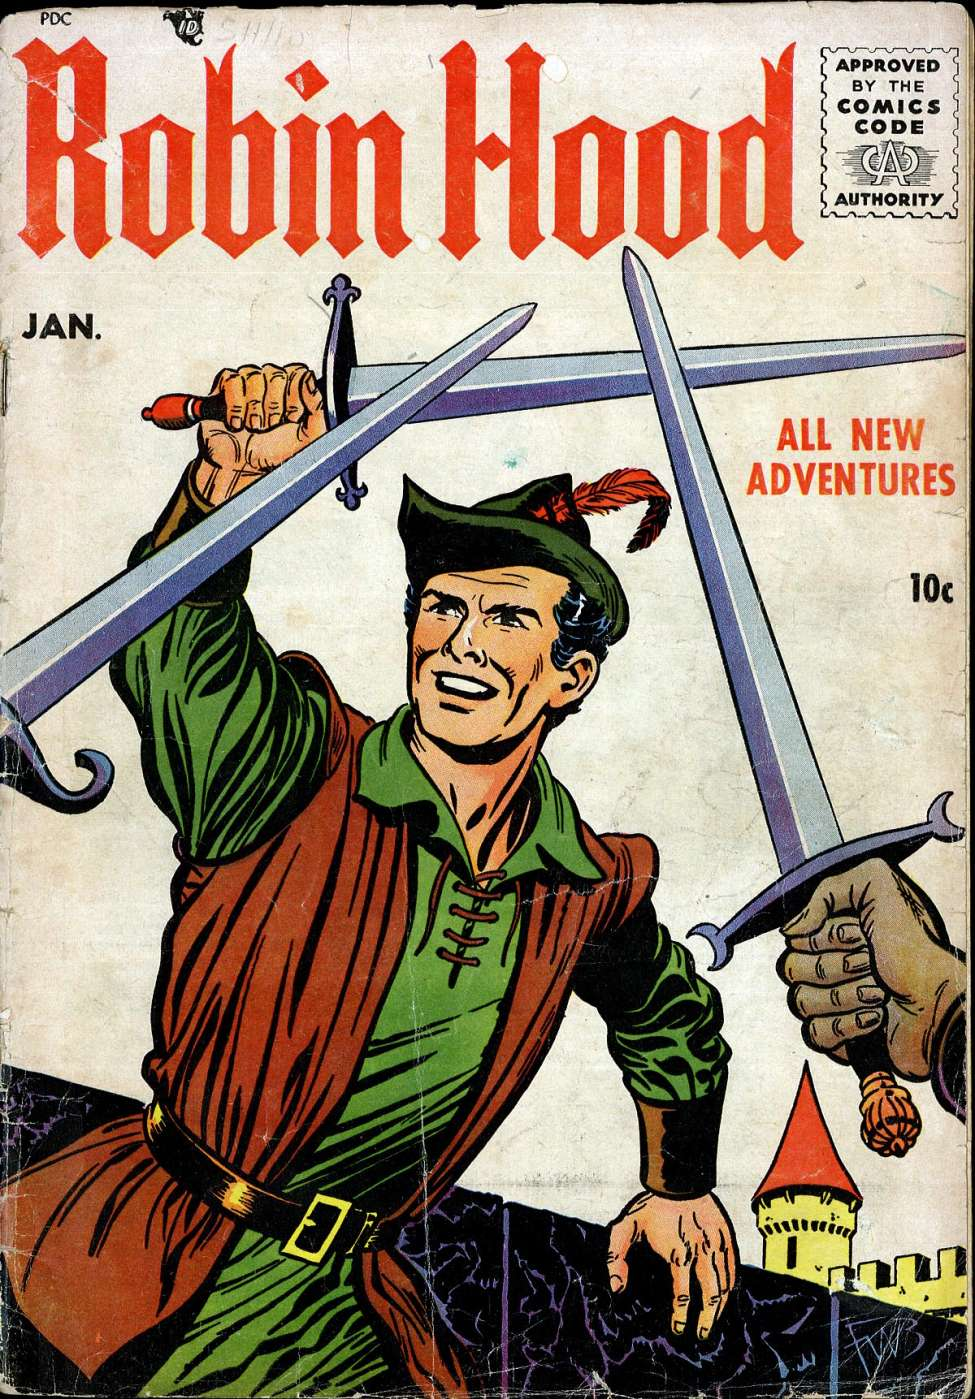 the merry adventures of robin hood book report The novel merry adventures of robin hood who got famous in nottingham shire, author howard pyle wrote inspired by the tales and legends about a famous outlaw.